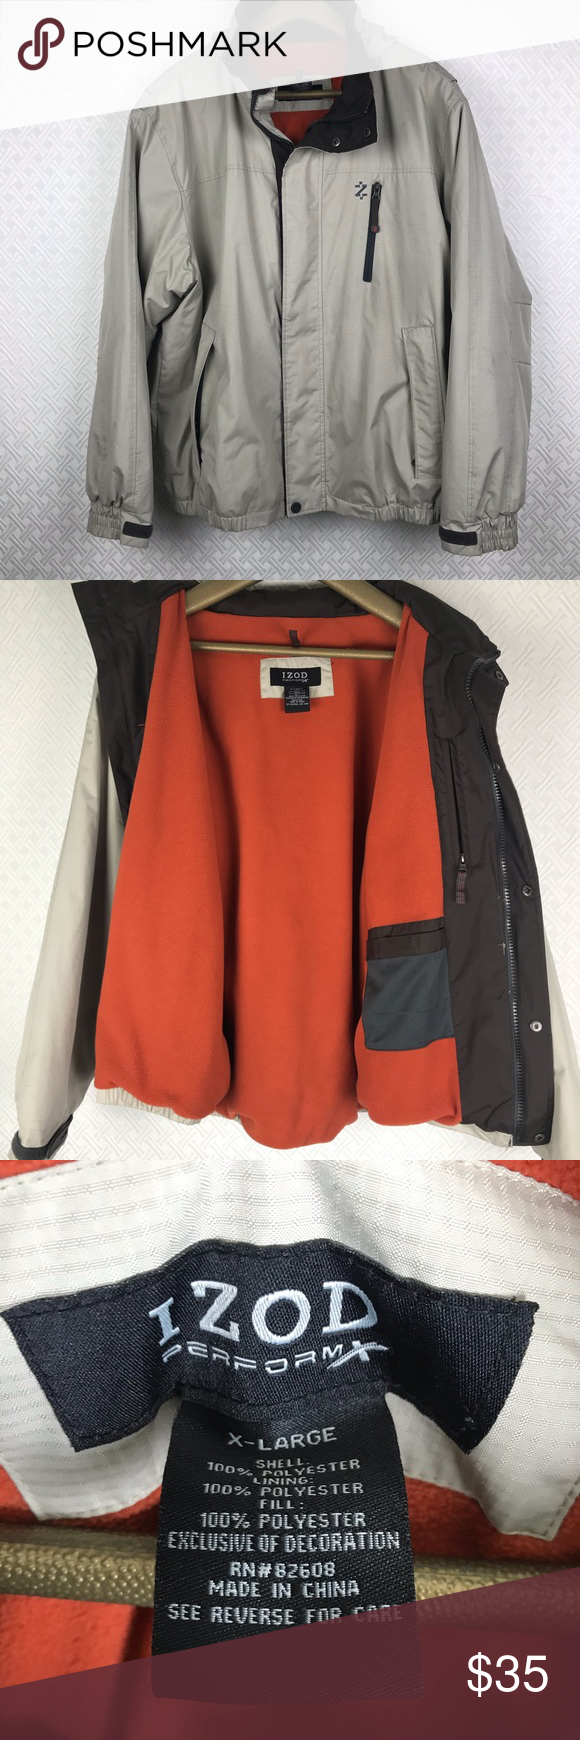 Izod Perform X Winter Jacket Item Is In Good Condition Other Than Stain On Sleeve You Can Have Hood Or No Hood Ask For Winter Jackets Jackets Clothes Design [ 1740 x 580 Pixel ]